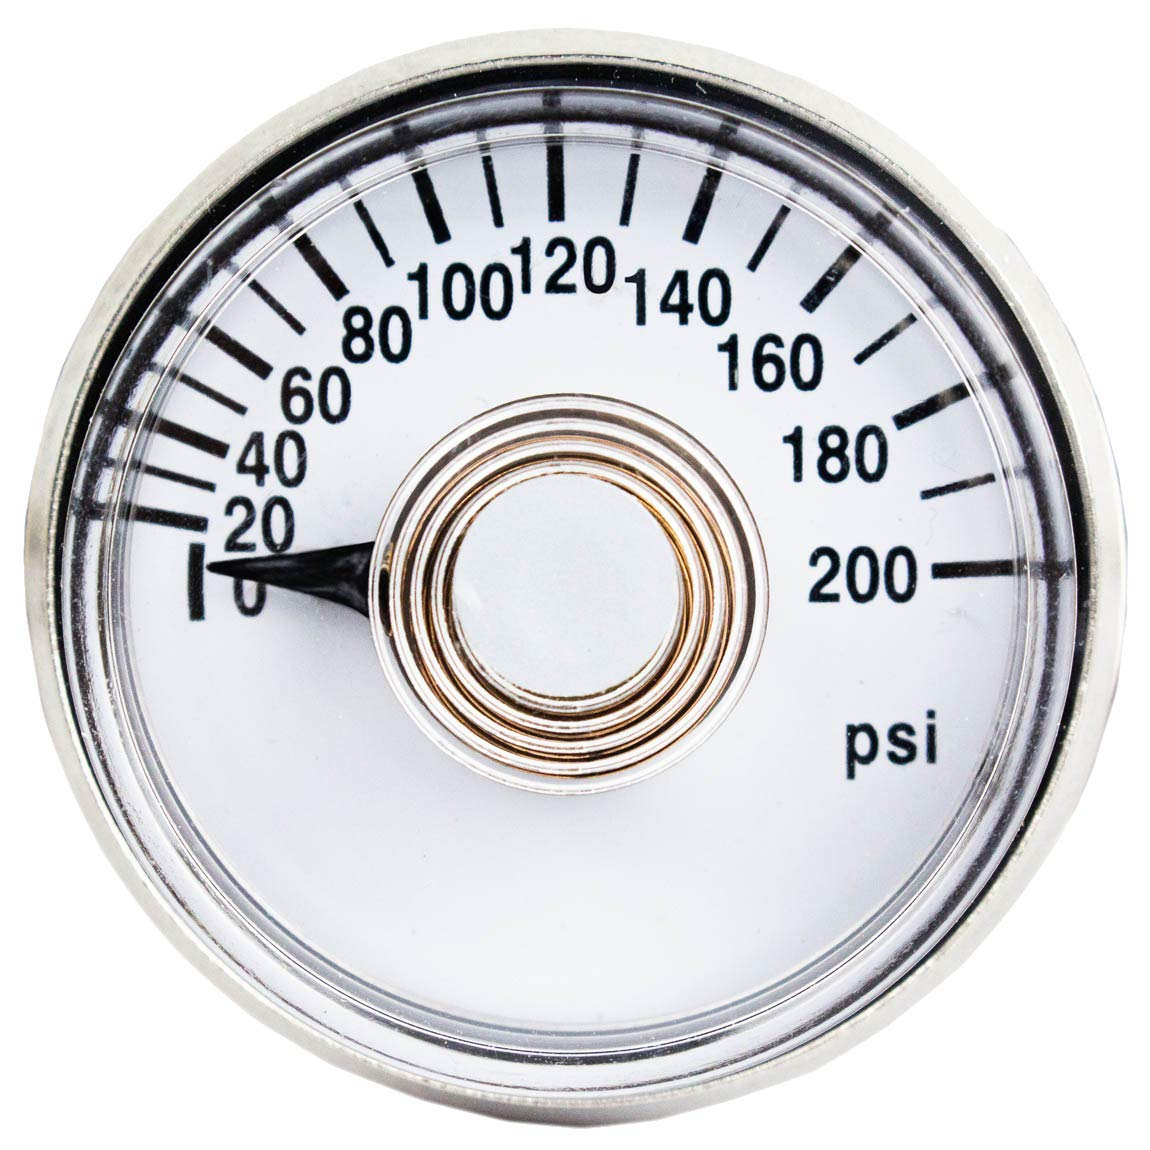 Sale Special Price Rolair 200 Long-awaited PSI Air Compressor Gauge GA0125200 Rear Mount Back Re